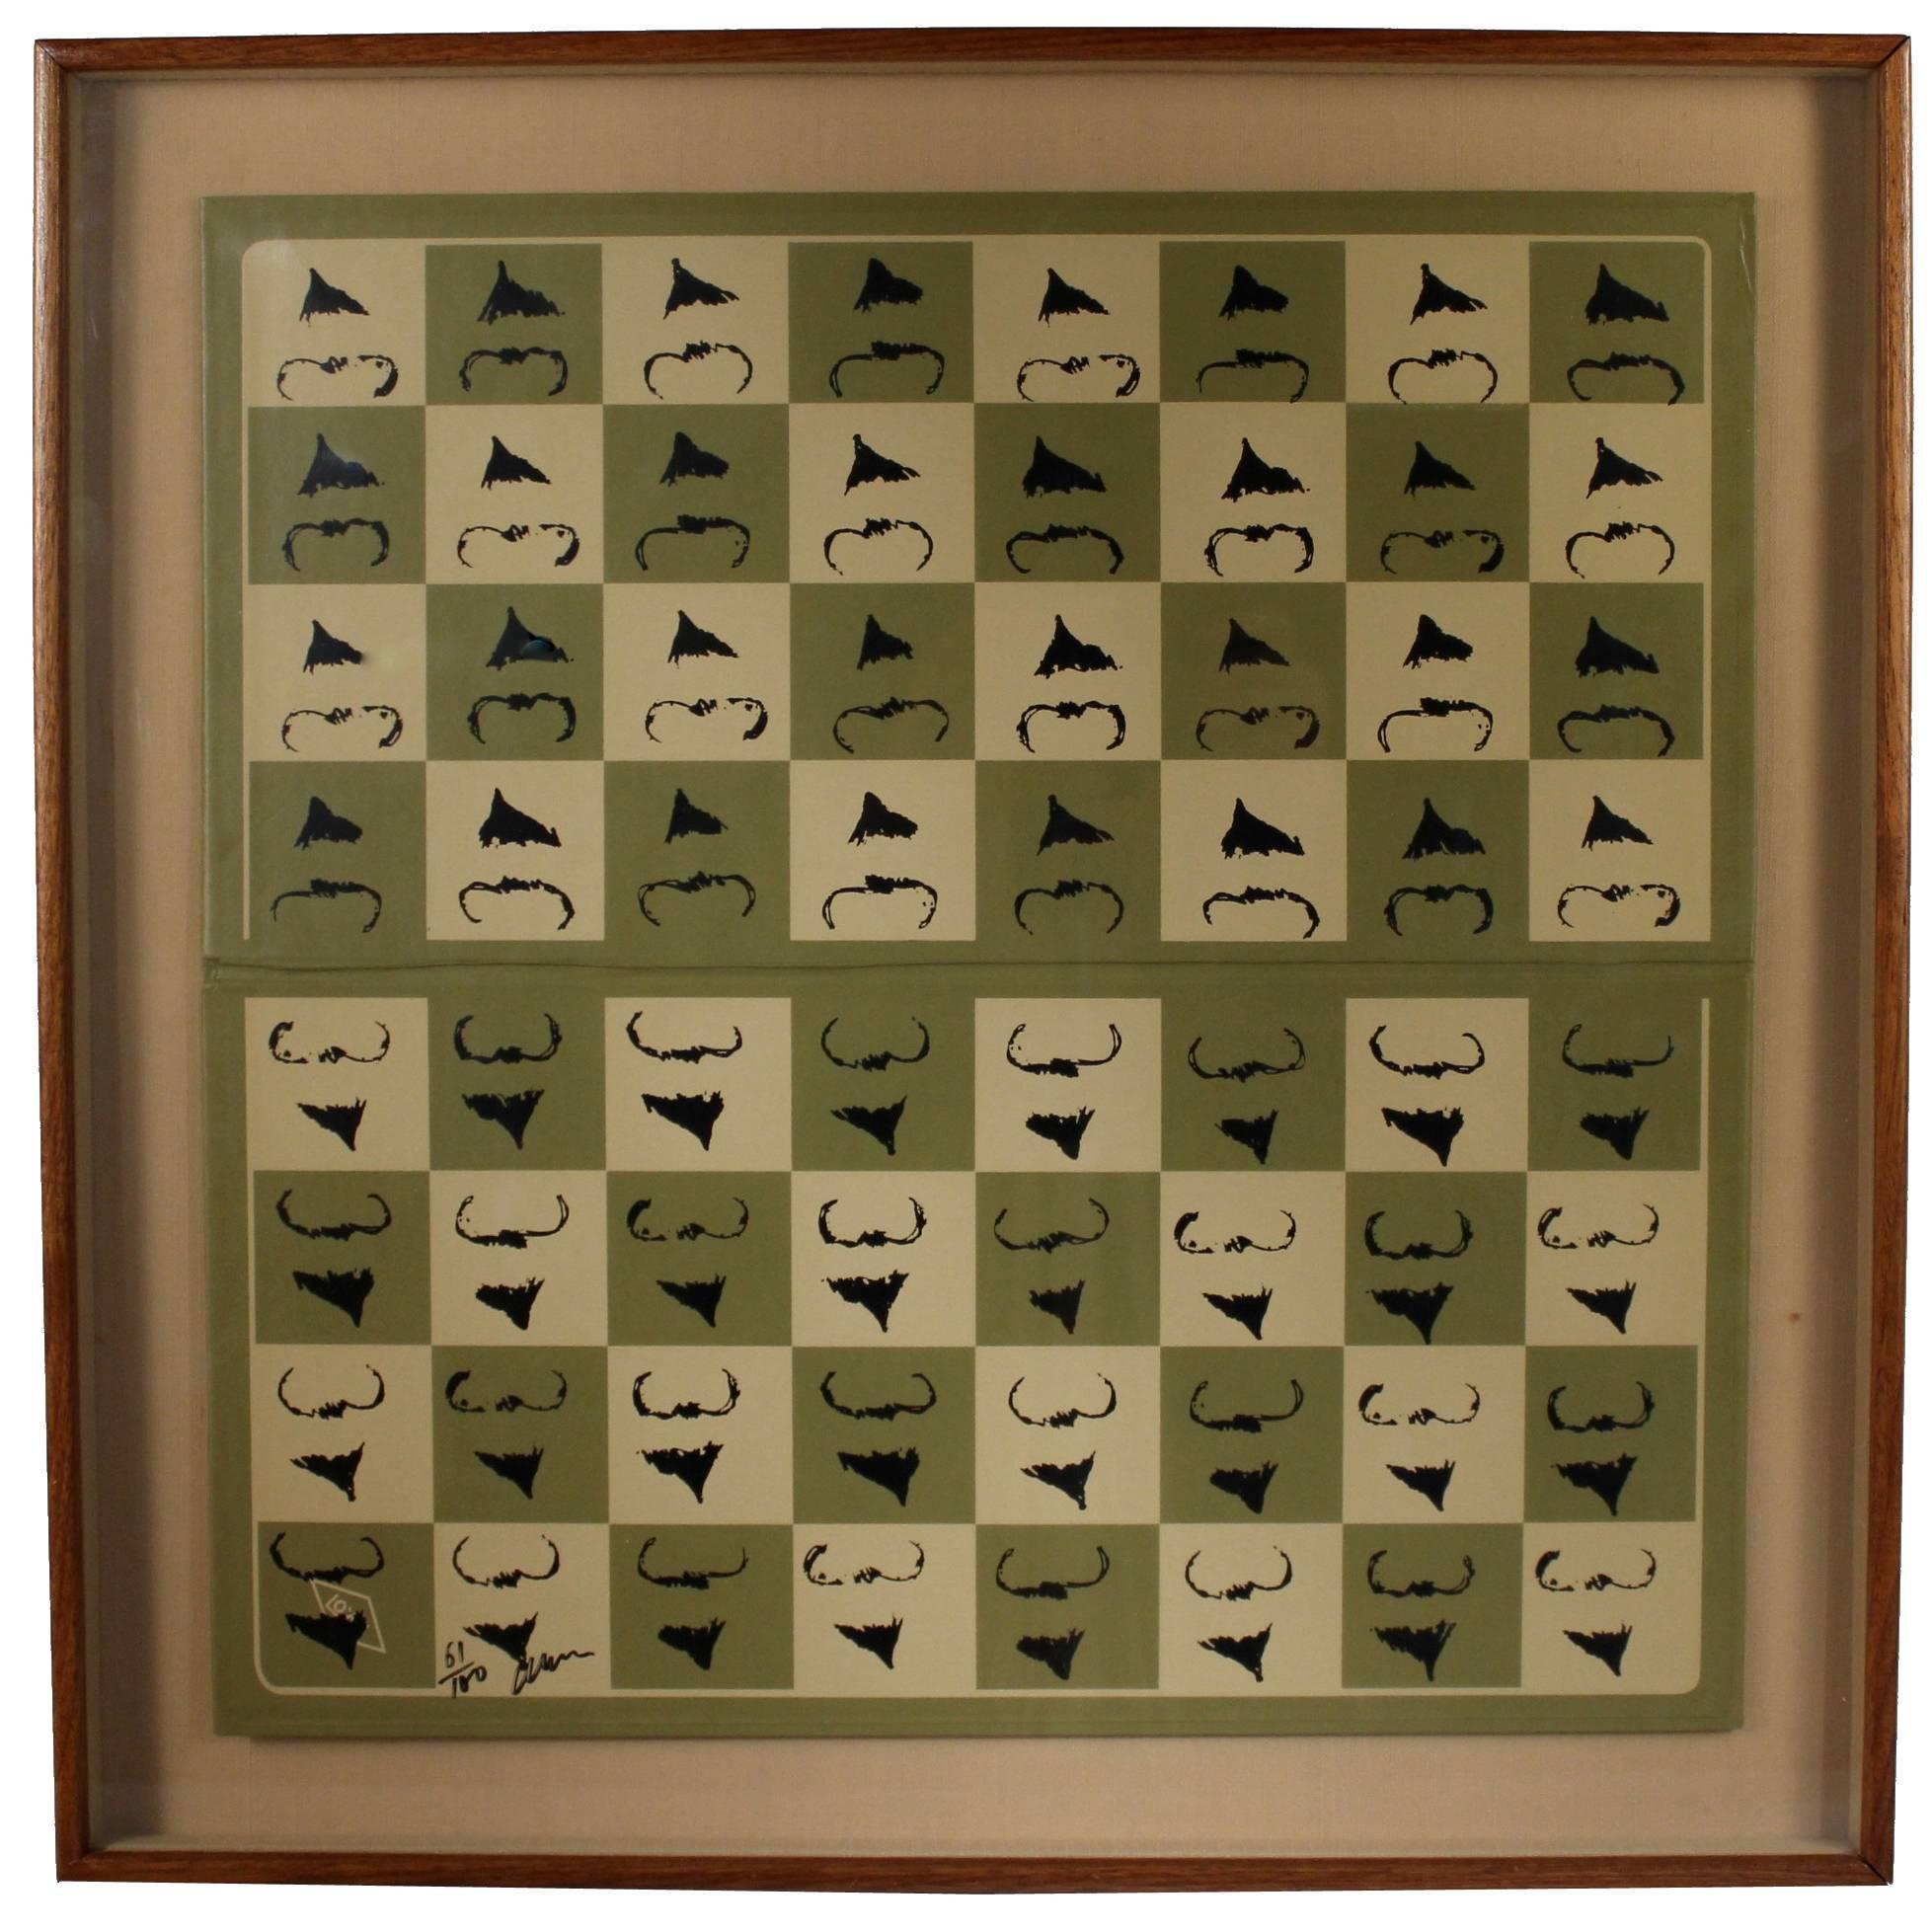 """Chessboard """"Homaage á Marcel Duchamp"""" with the L.H.O.O.Q. Mustache by Arman"""